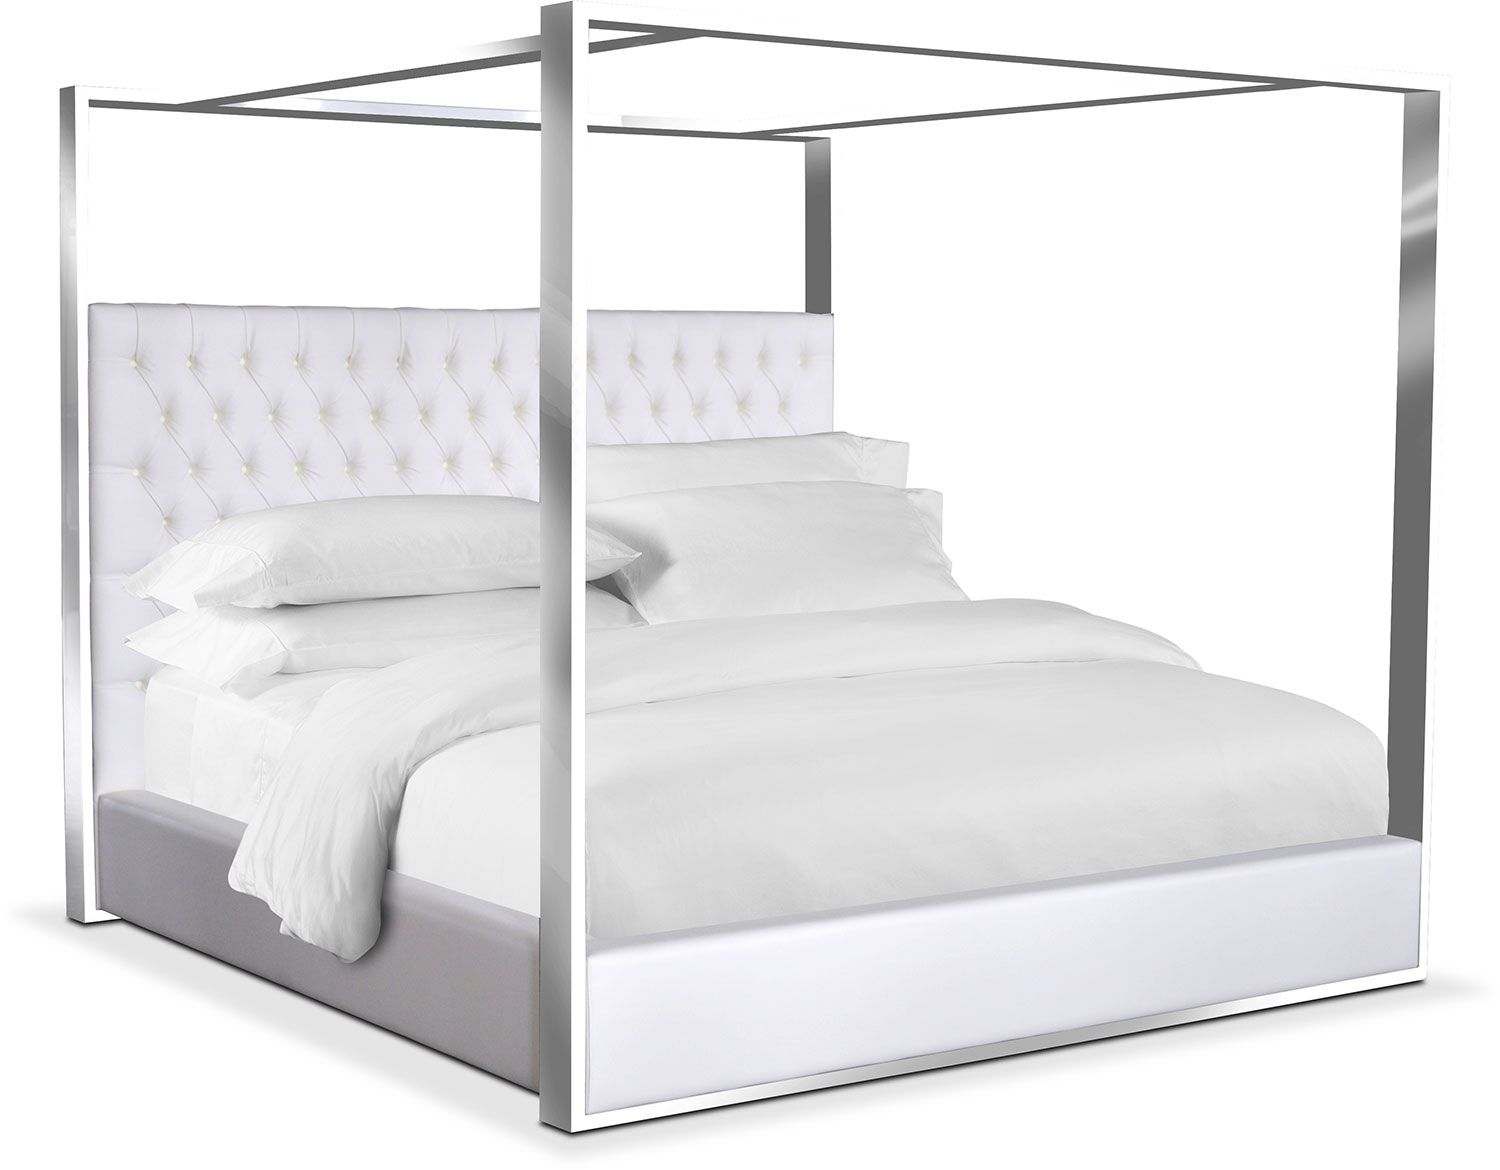 Bedroom Furniture - Presley King Canopy Bed - White  sc 1 st  Pinterest & Bedroom Furniture - Presley King Canopy Bed - White | Made to Mix ...